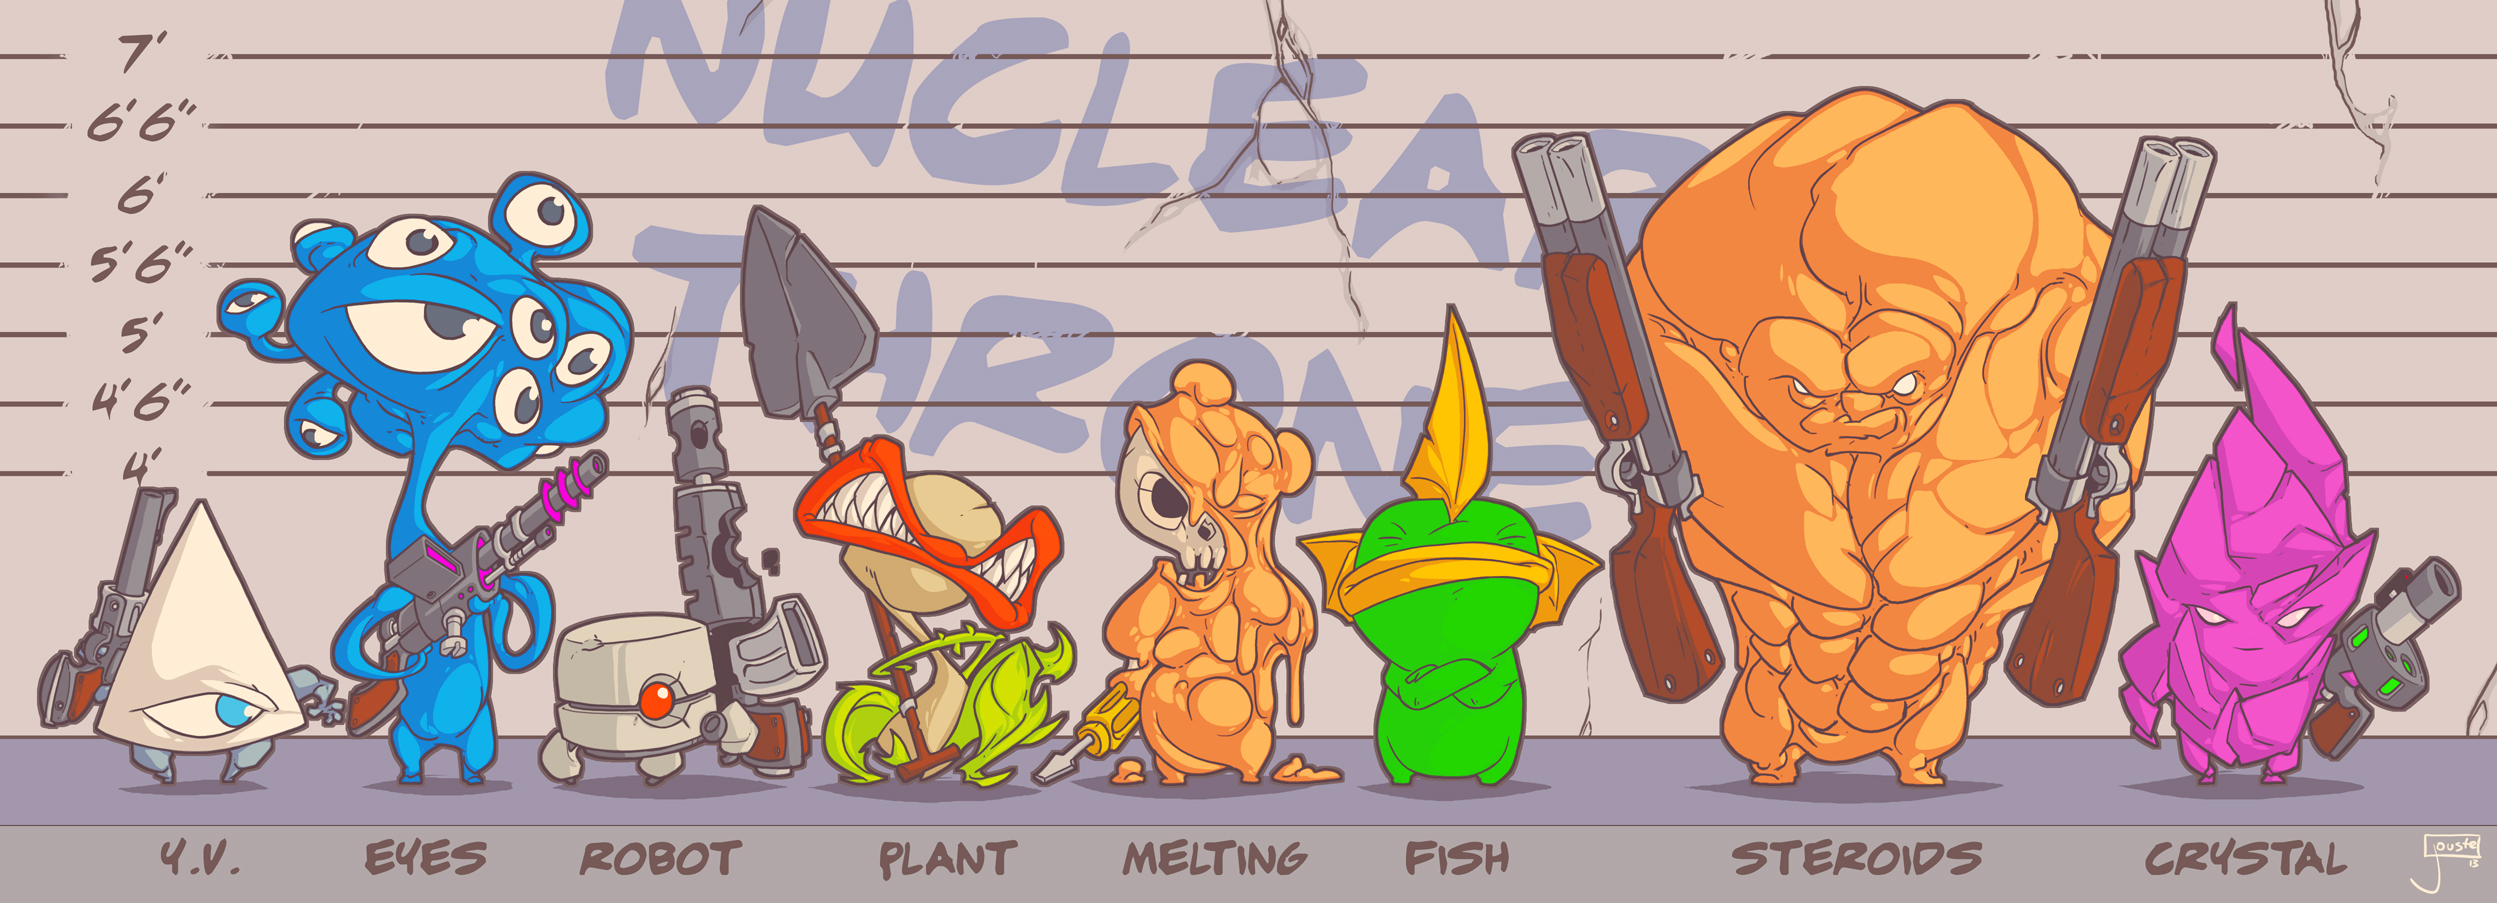 Nuclear Throne Fan art: Nuclear Suspects by jouste